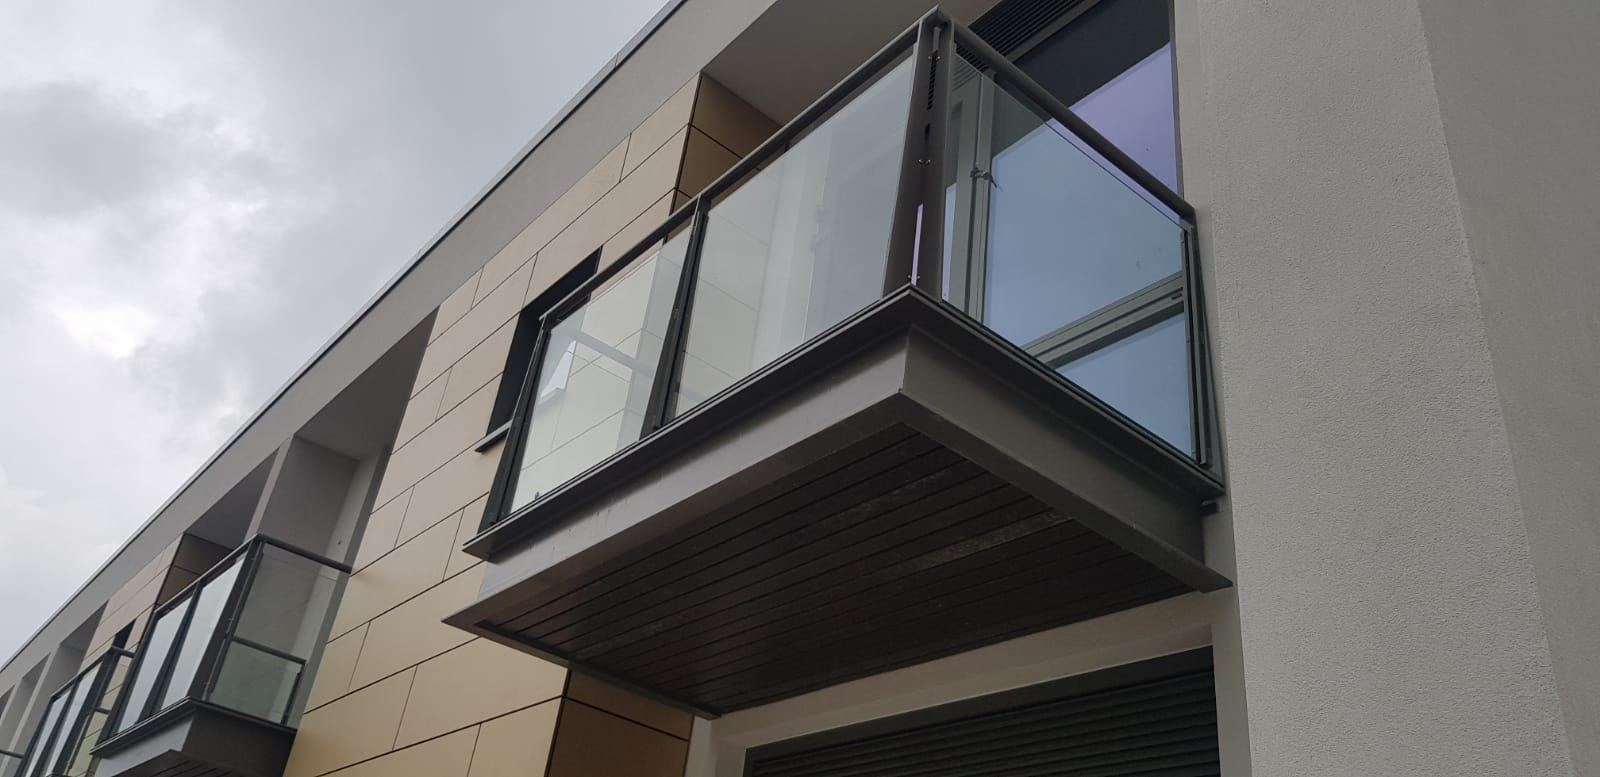 Installed balconies at Peamount Hospital 3